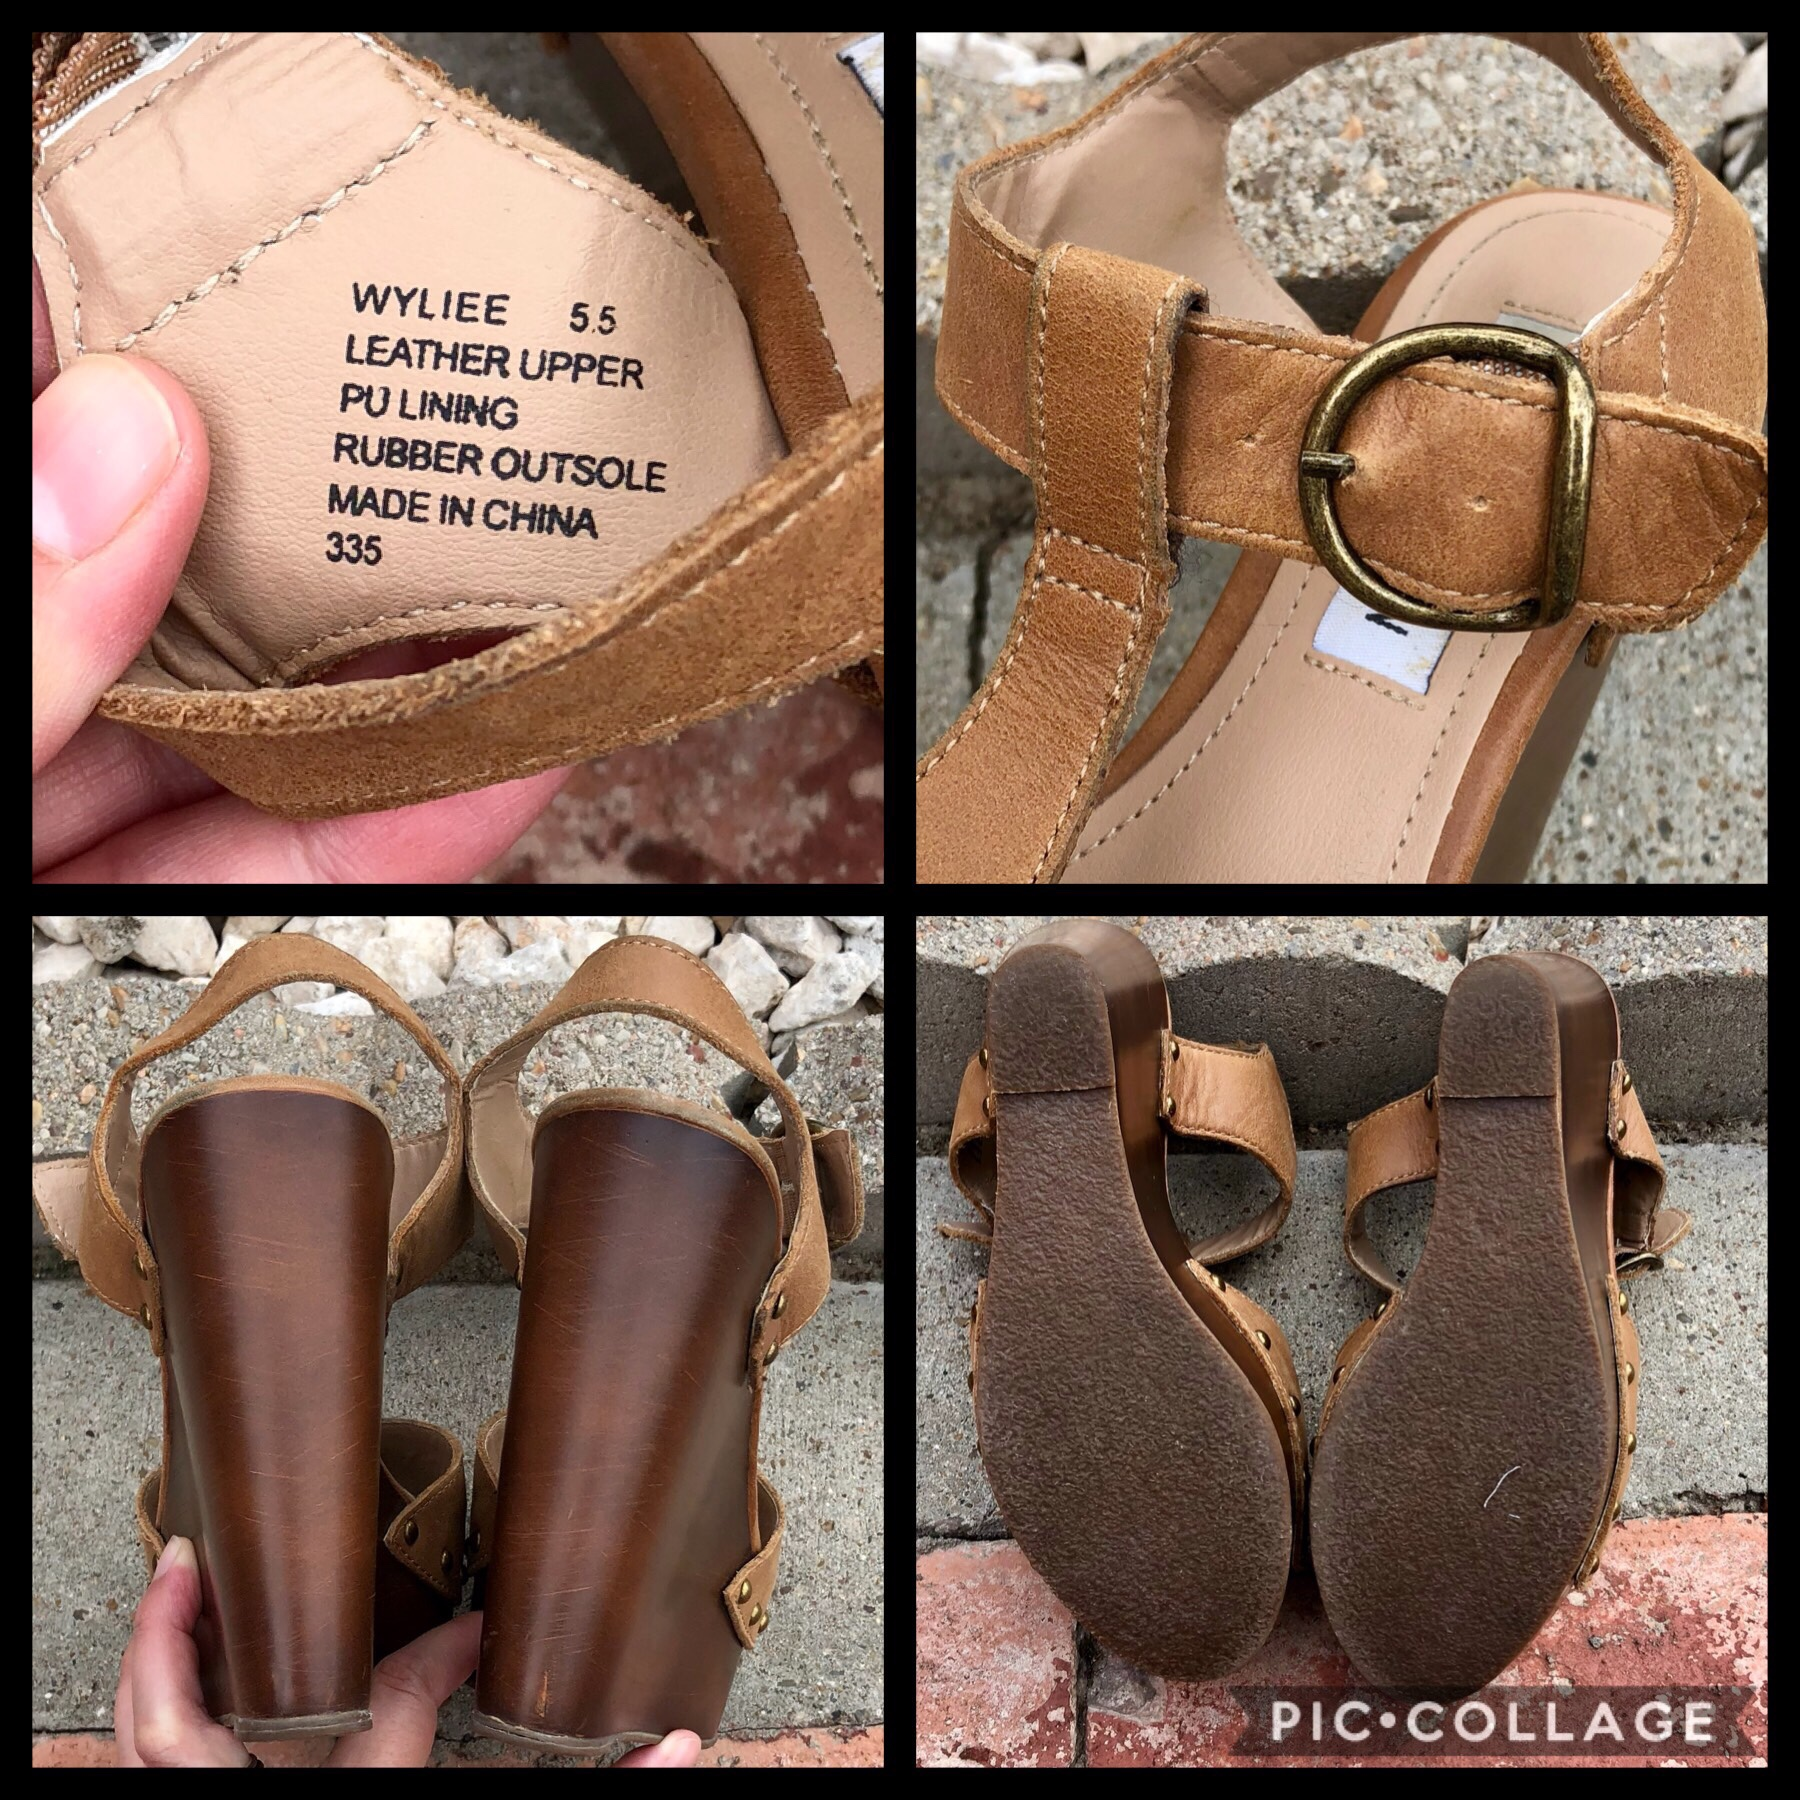 640c390f485 Steve Madden WYLIEE leather t-strap wedge sandals... - Depop